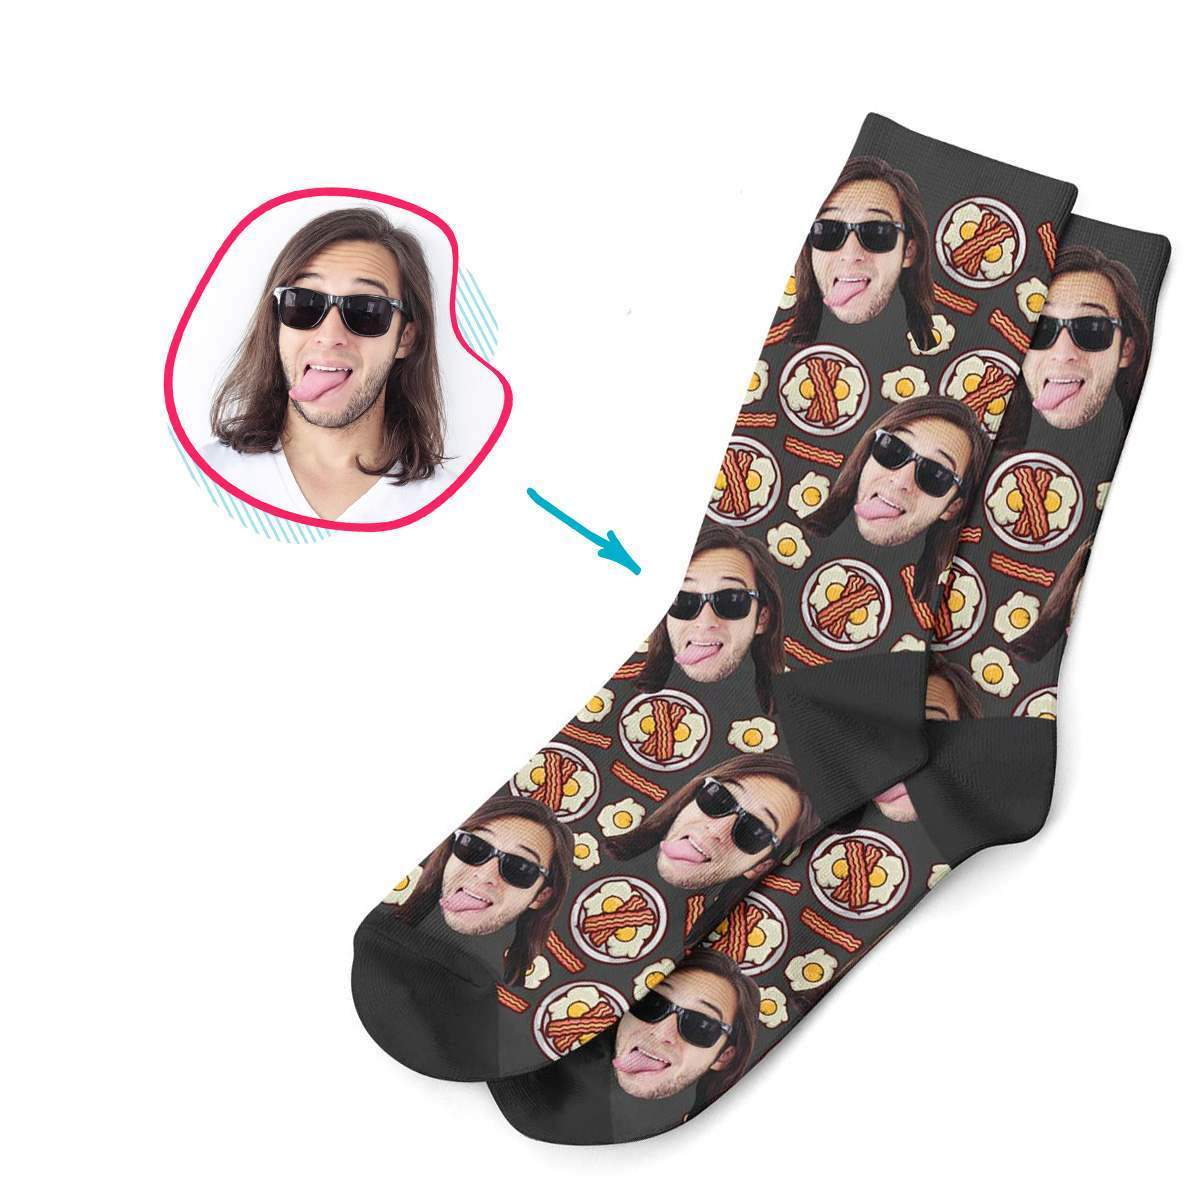 dark Bacon and Eggs socks personalized with photo of face printed on them